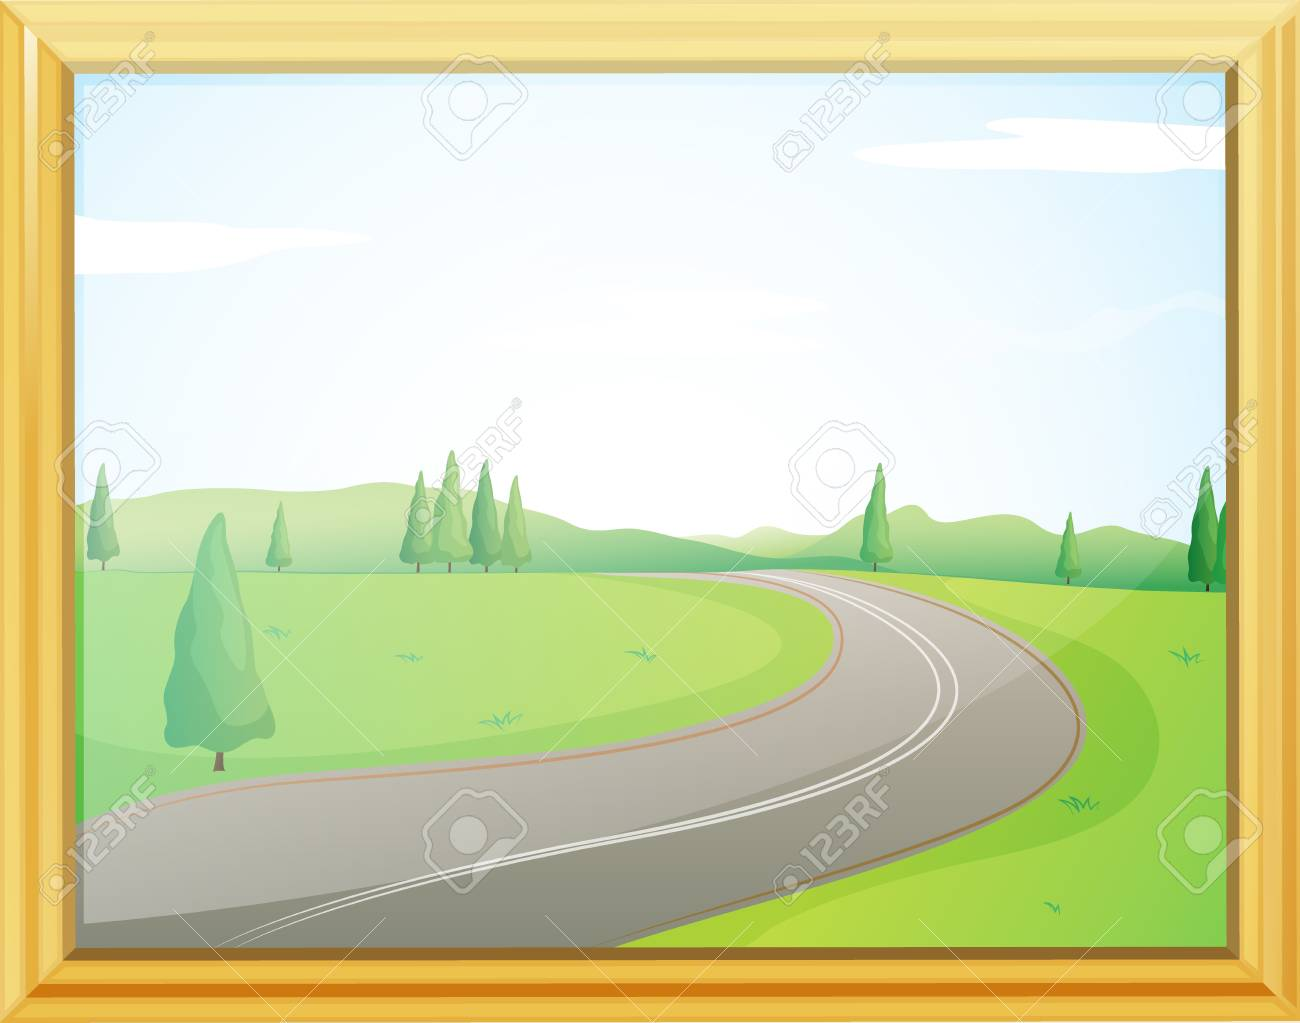 Illustration of a frame of a road with a green view Stock Vector - 17358087